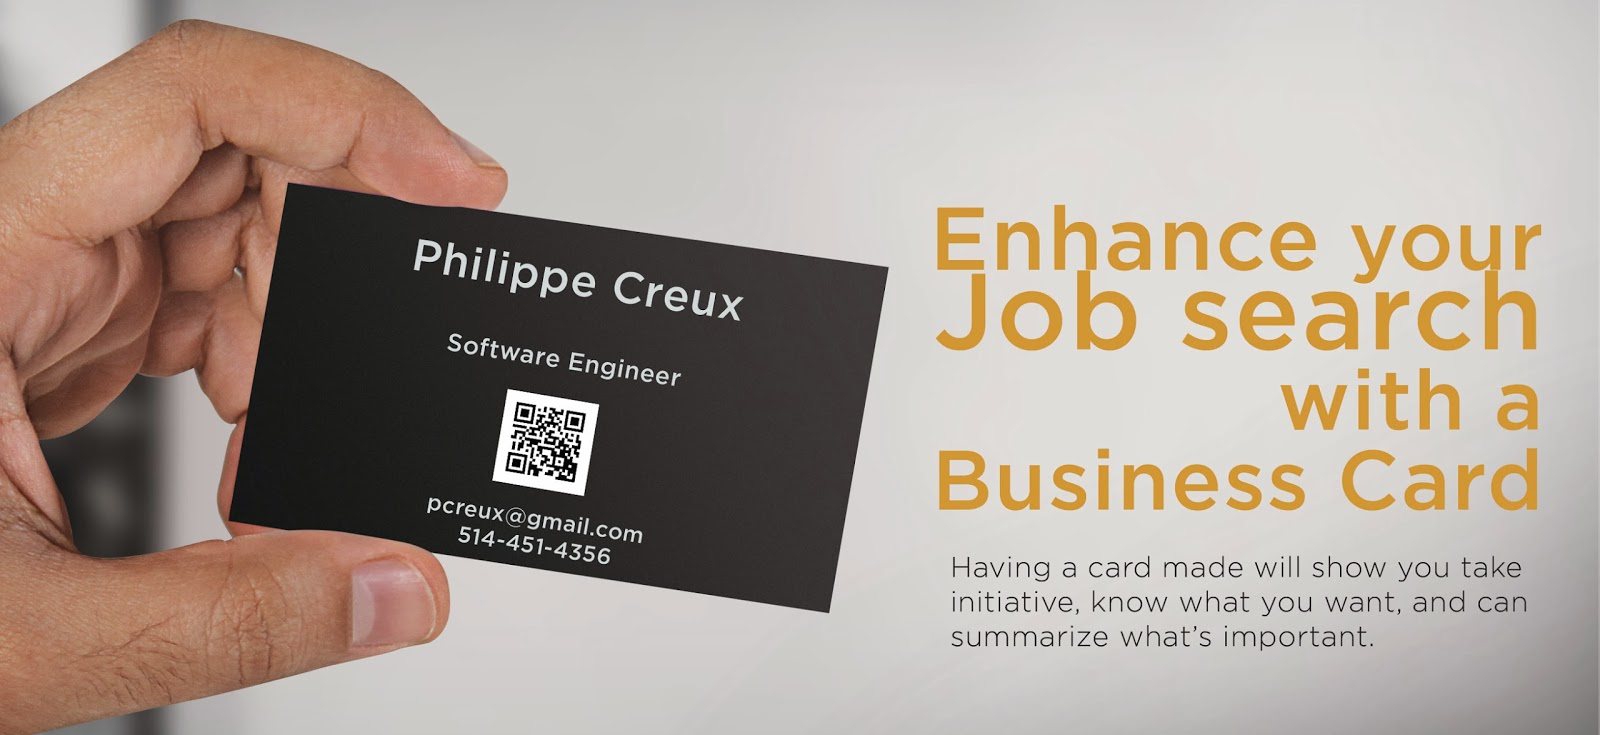 Business Cards For Unemployed Job Seekers Images - Card Design And ...